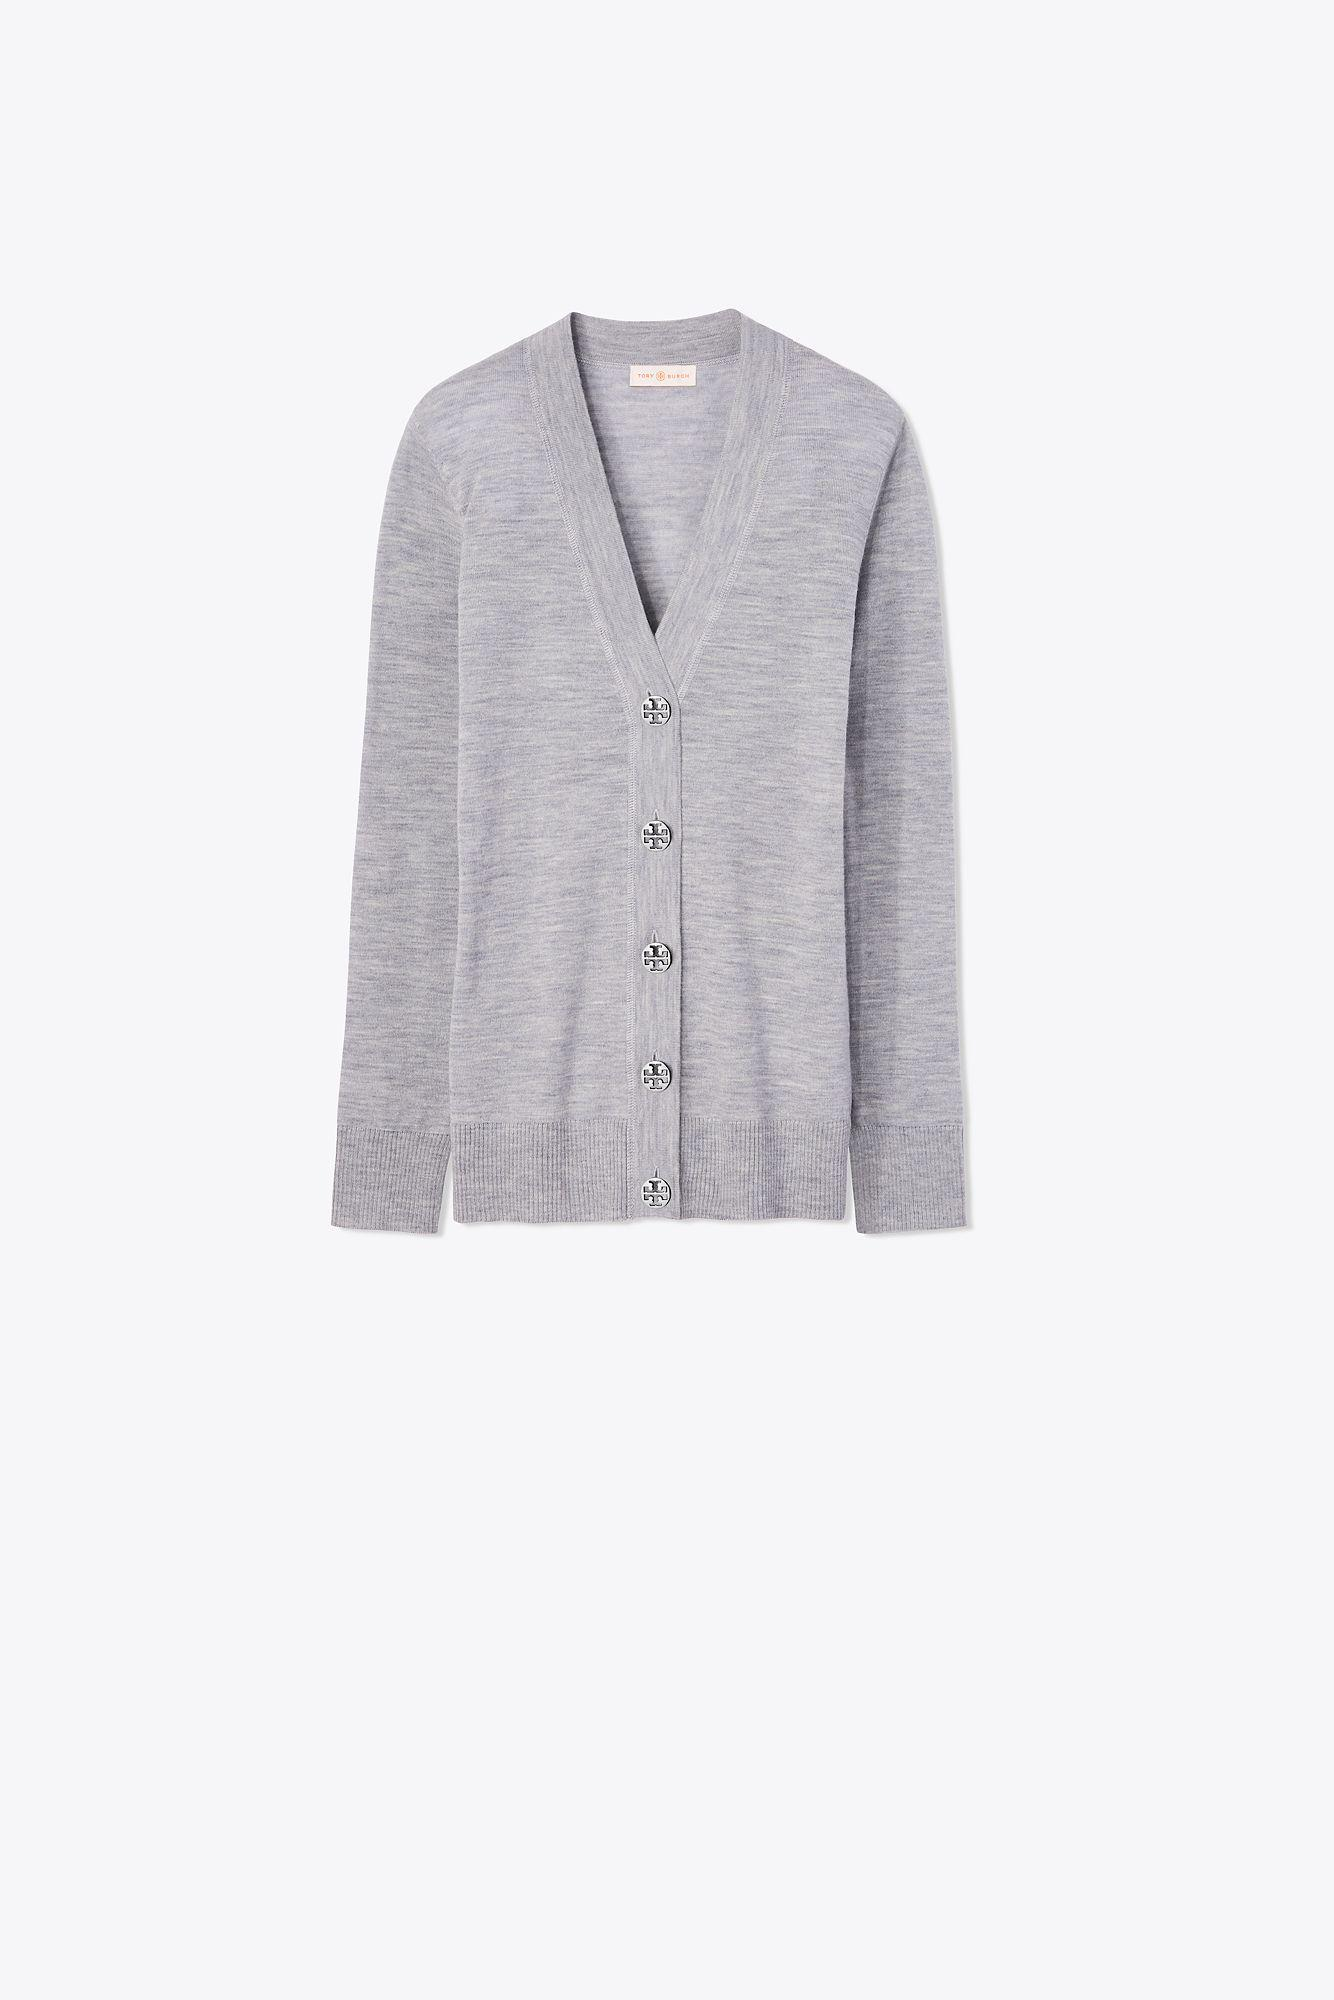 672c61f76e9 Lyst - Tory Burch Merino Wool Simone Cardigan in Gray